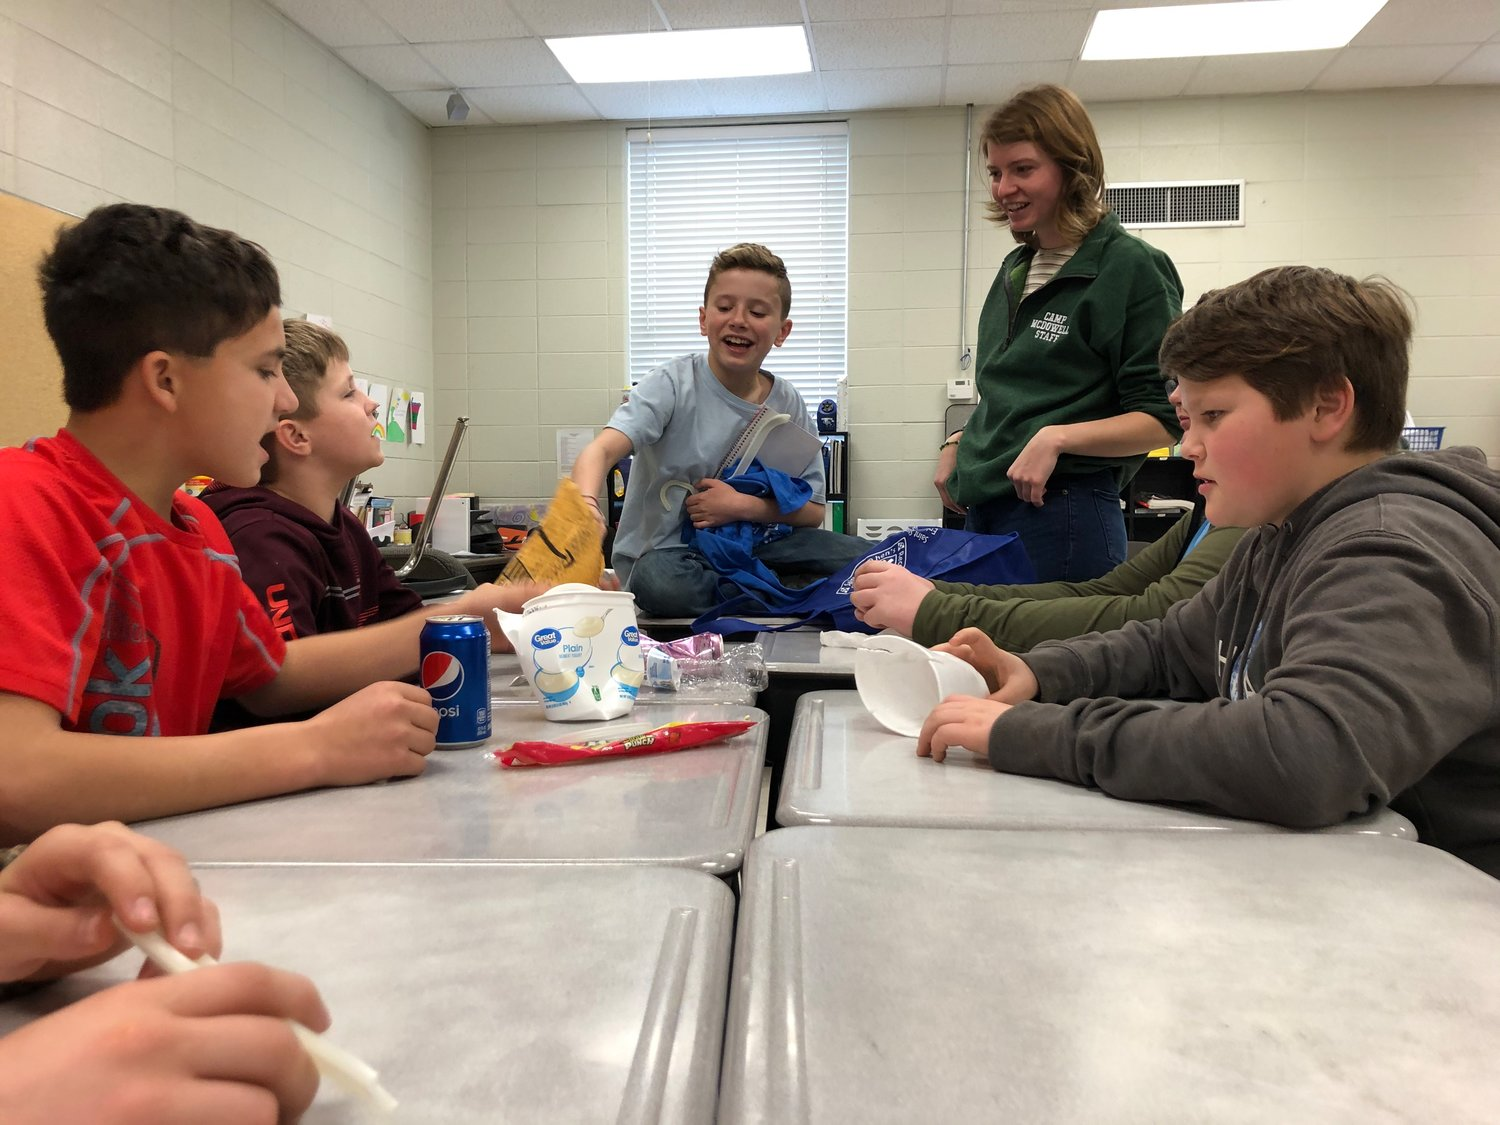 Hannah Borgerson talks to Meek students during an activity. Instructors from Camp McDowell presented a new recycling curriculum during the final two weeks of January to all Meek students.